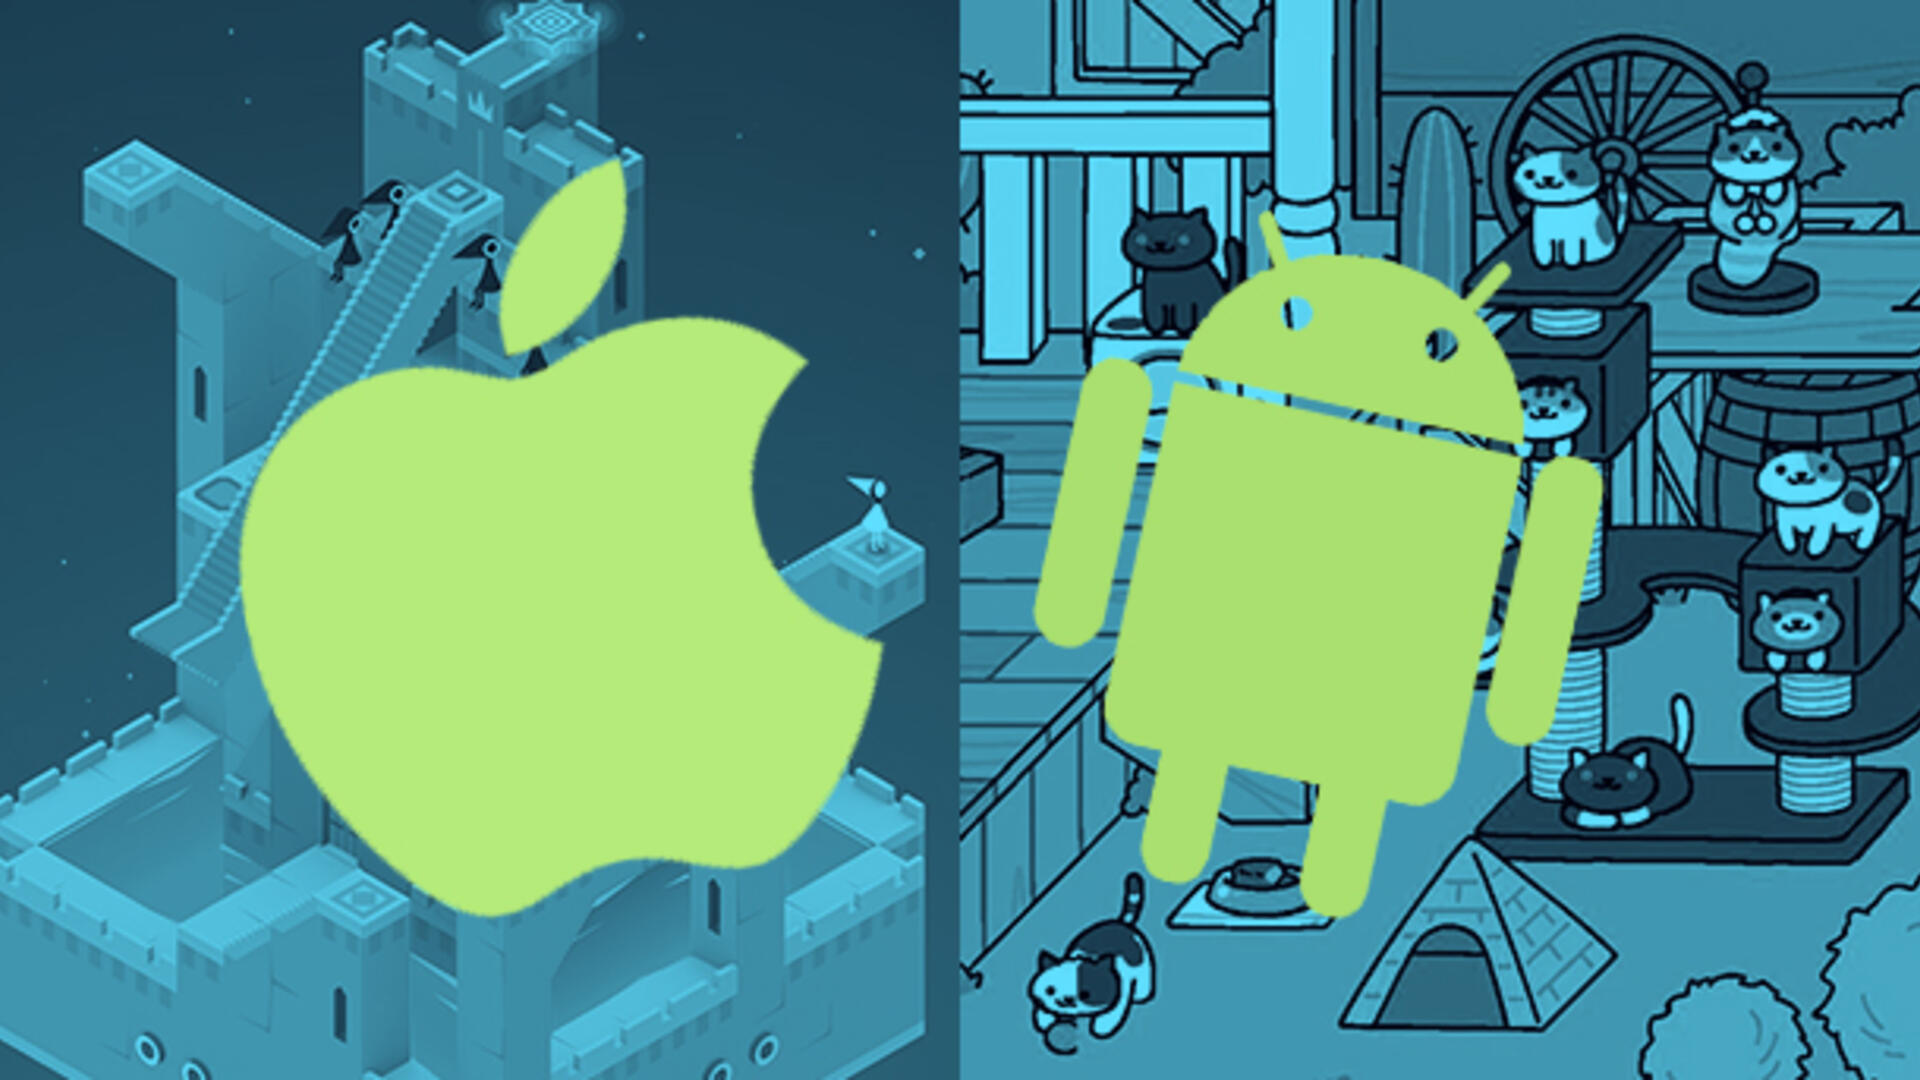 The Best Mobile Games for iOS and Android | USgamer